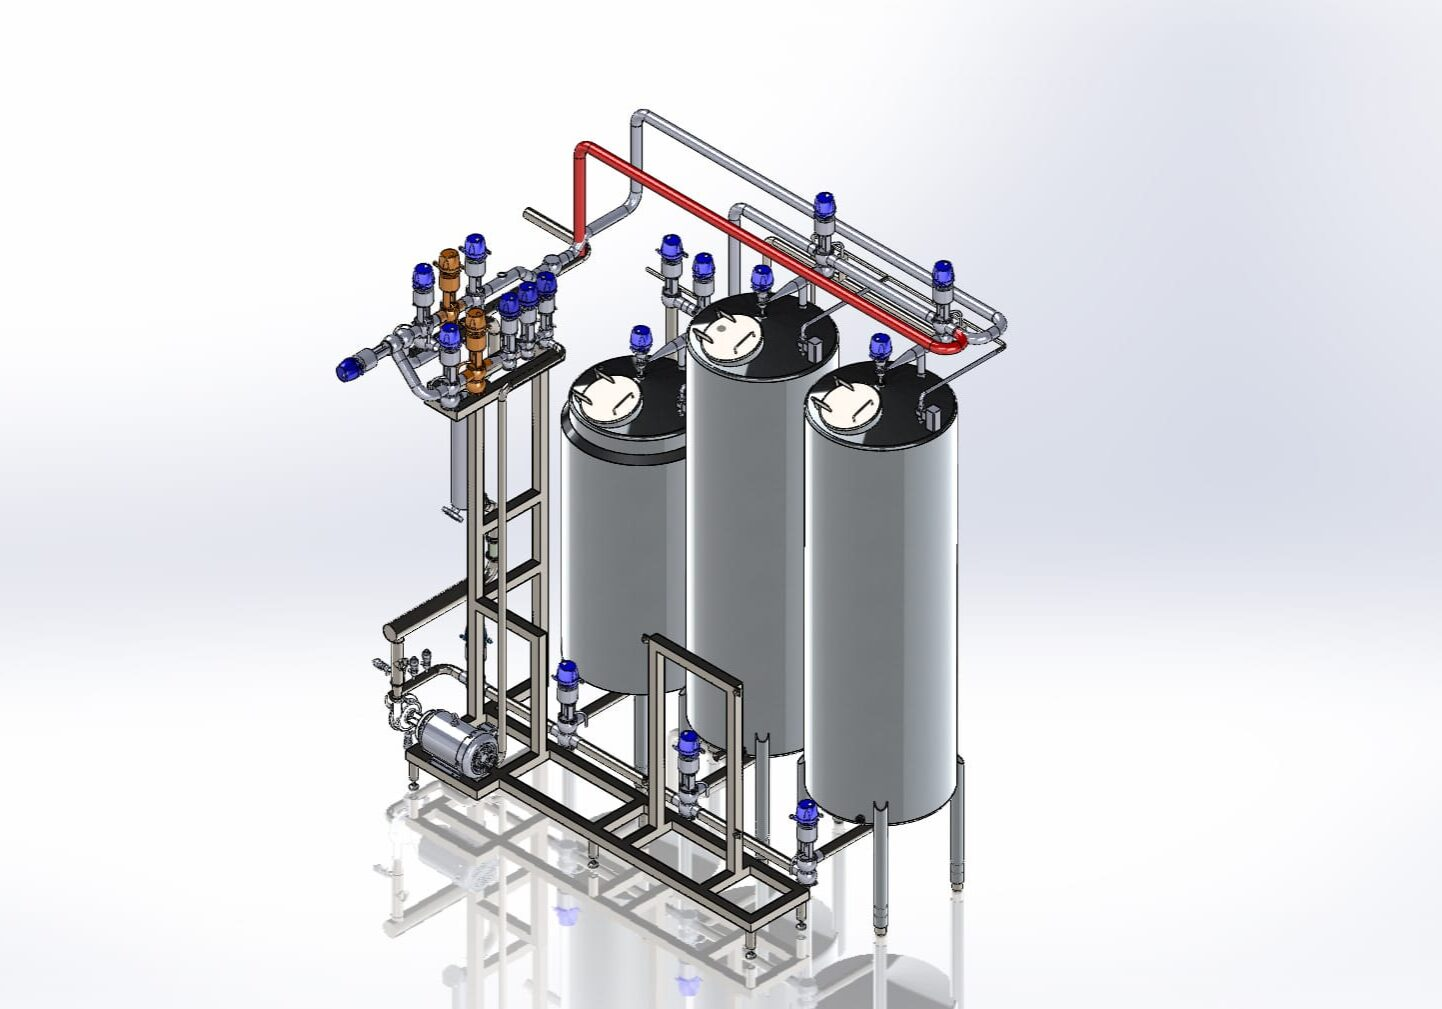 CIp skid layout from Pure Ingenuity.